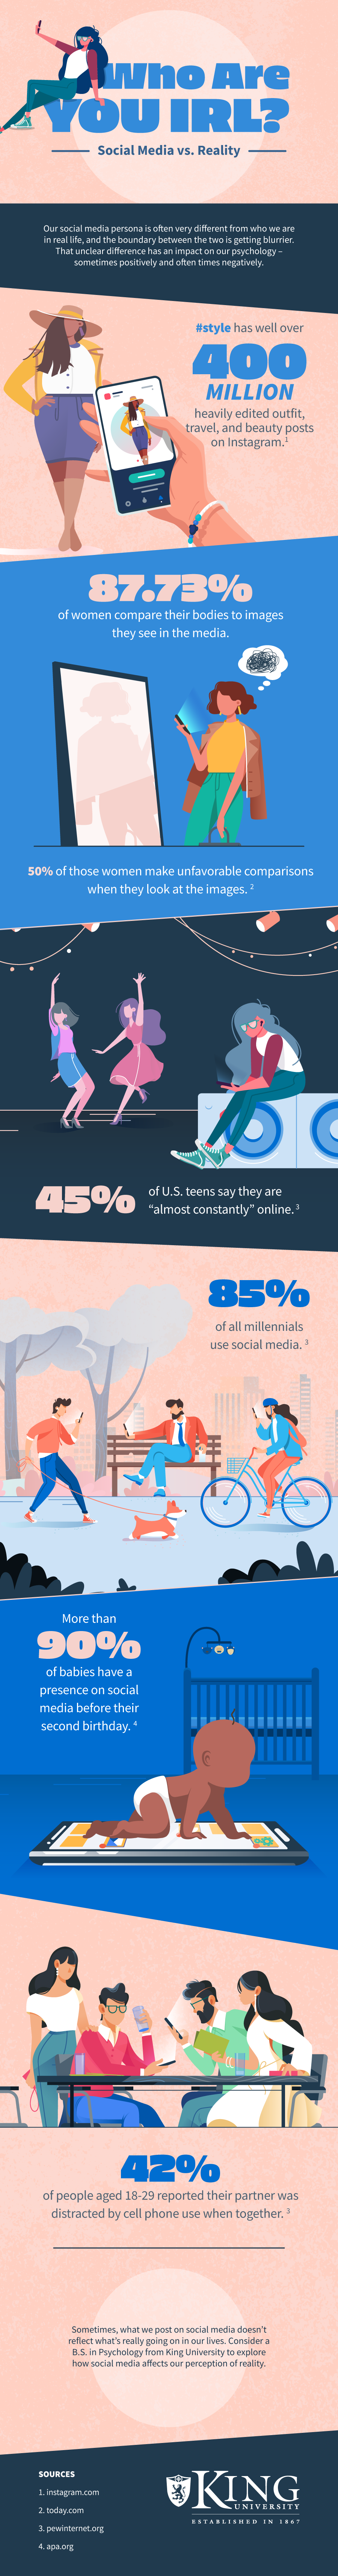 Illustrated infographic contrasting the image people typically present on social media vs their real lives.